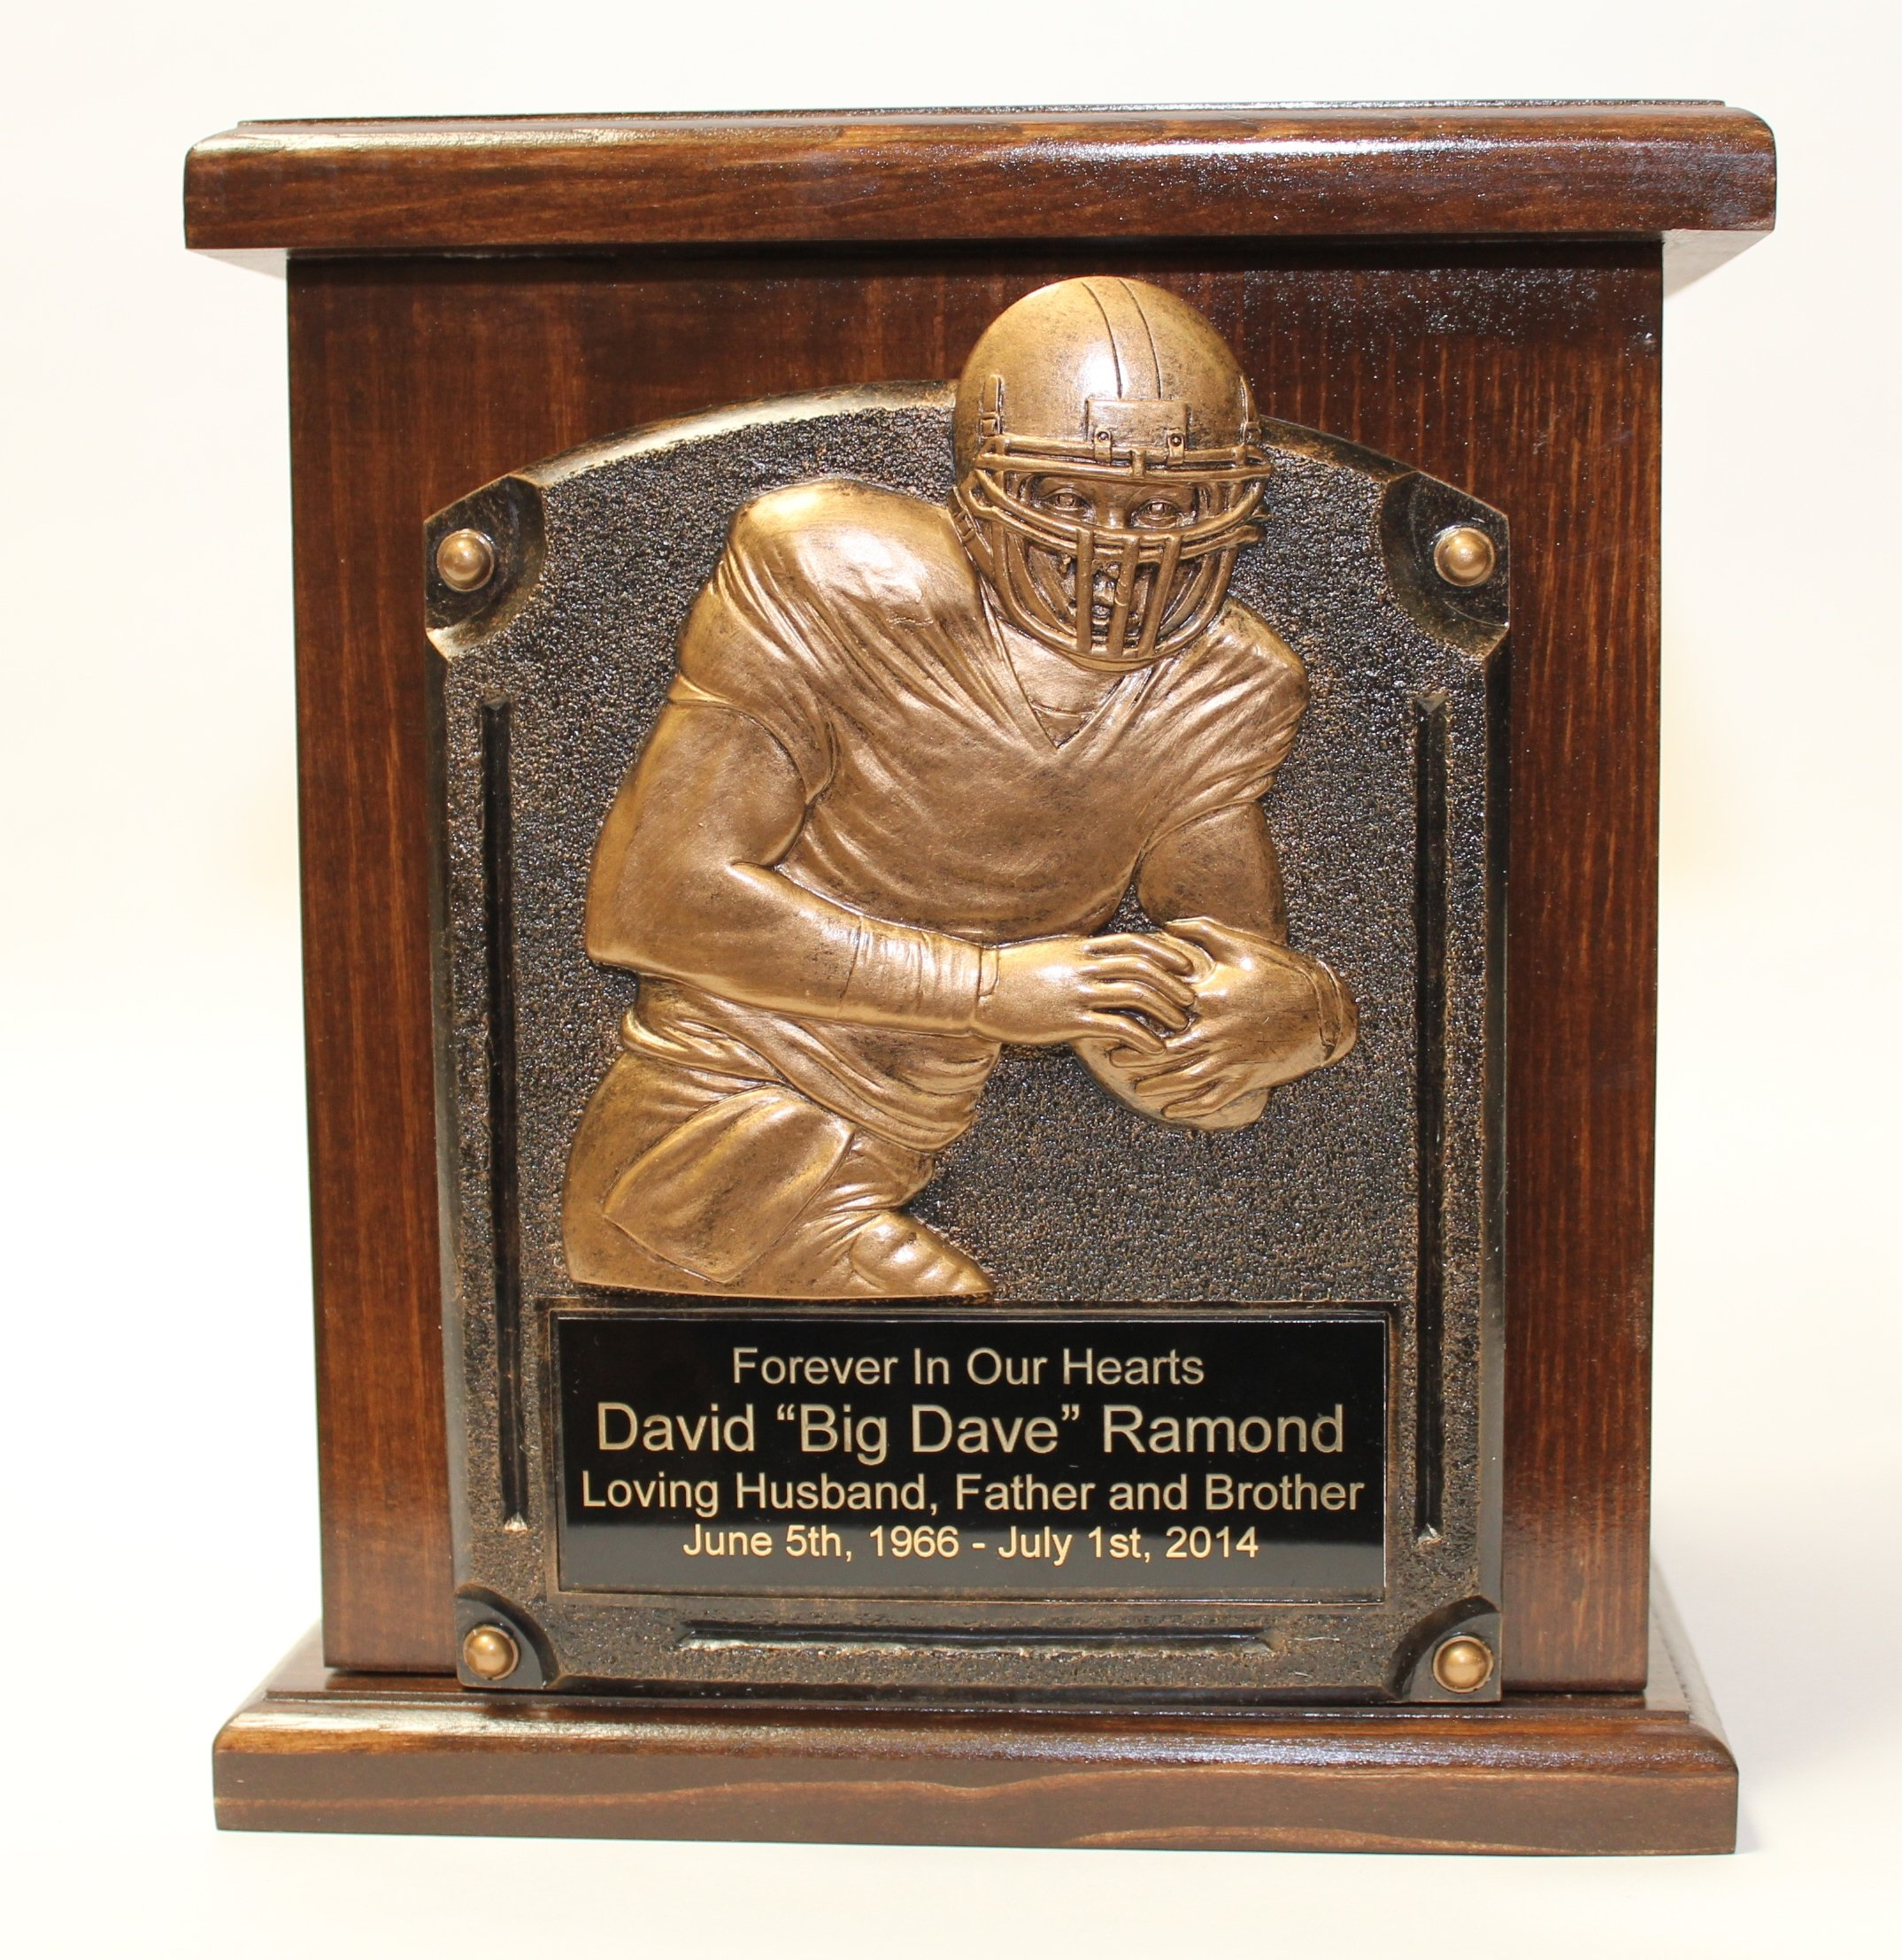 Football Adult Memorial Wooden Cremation Urn-Sports Funeral Urns- with Personalization by NWA